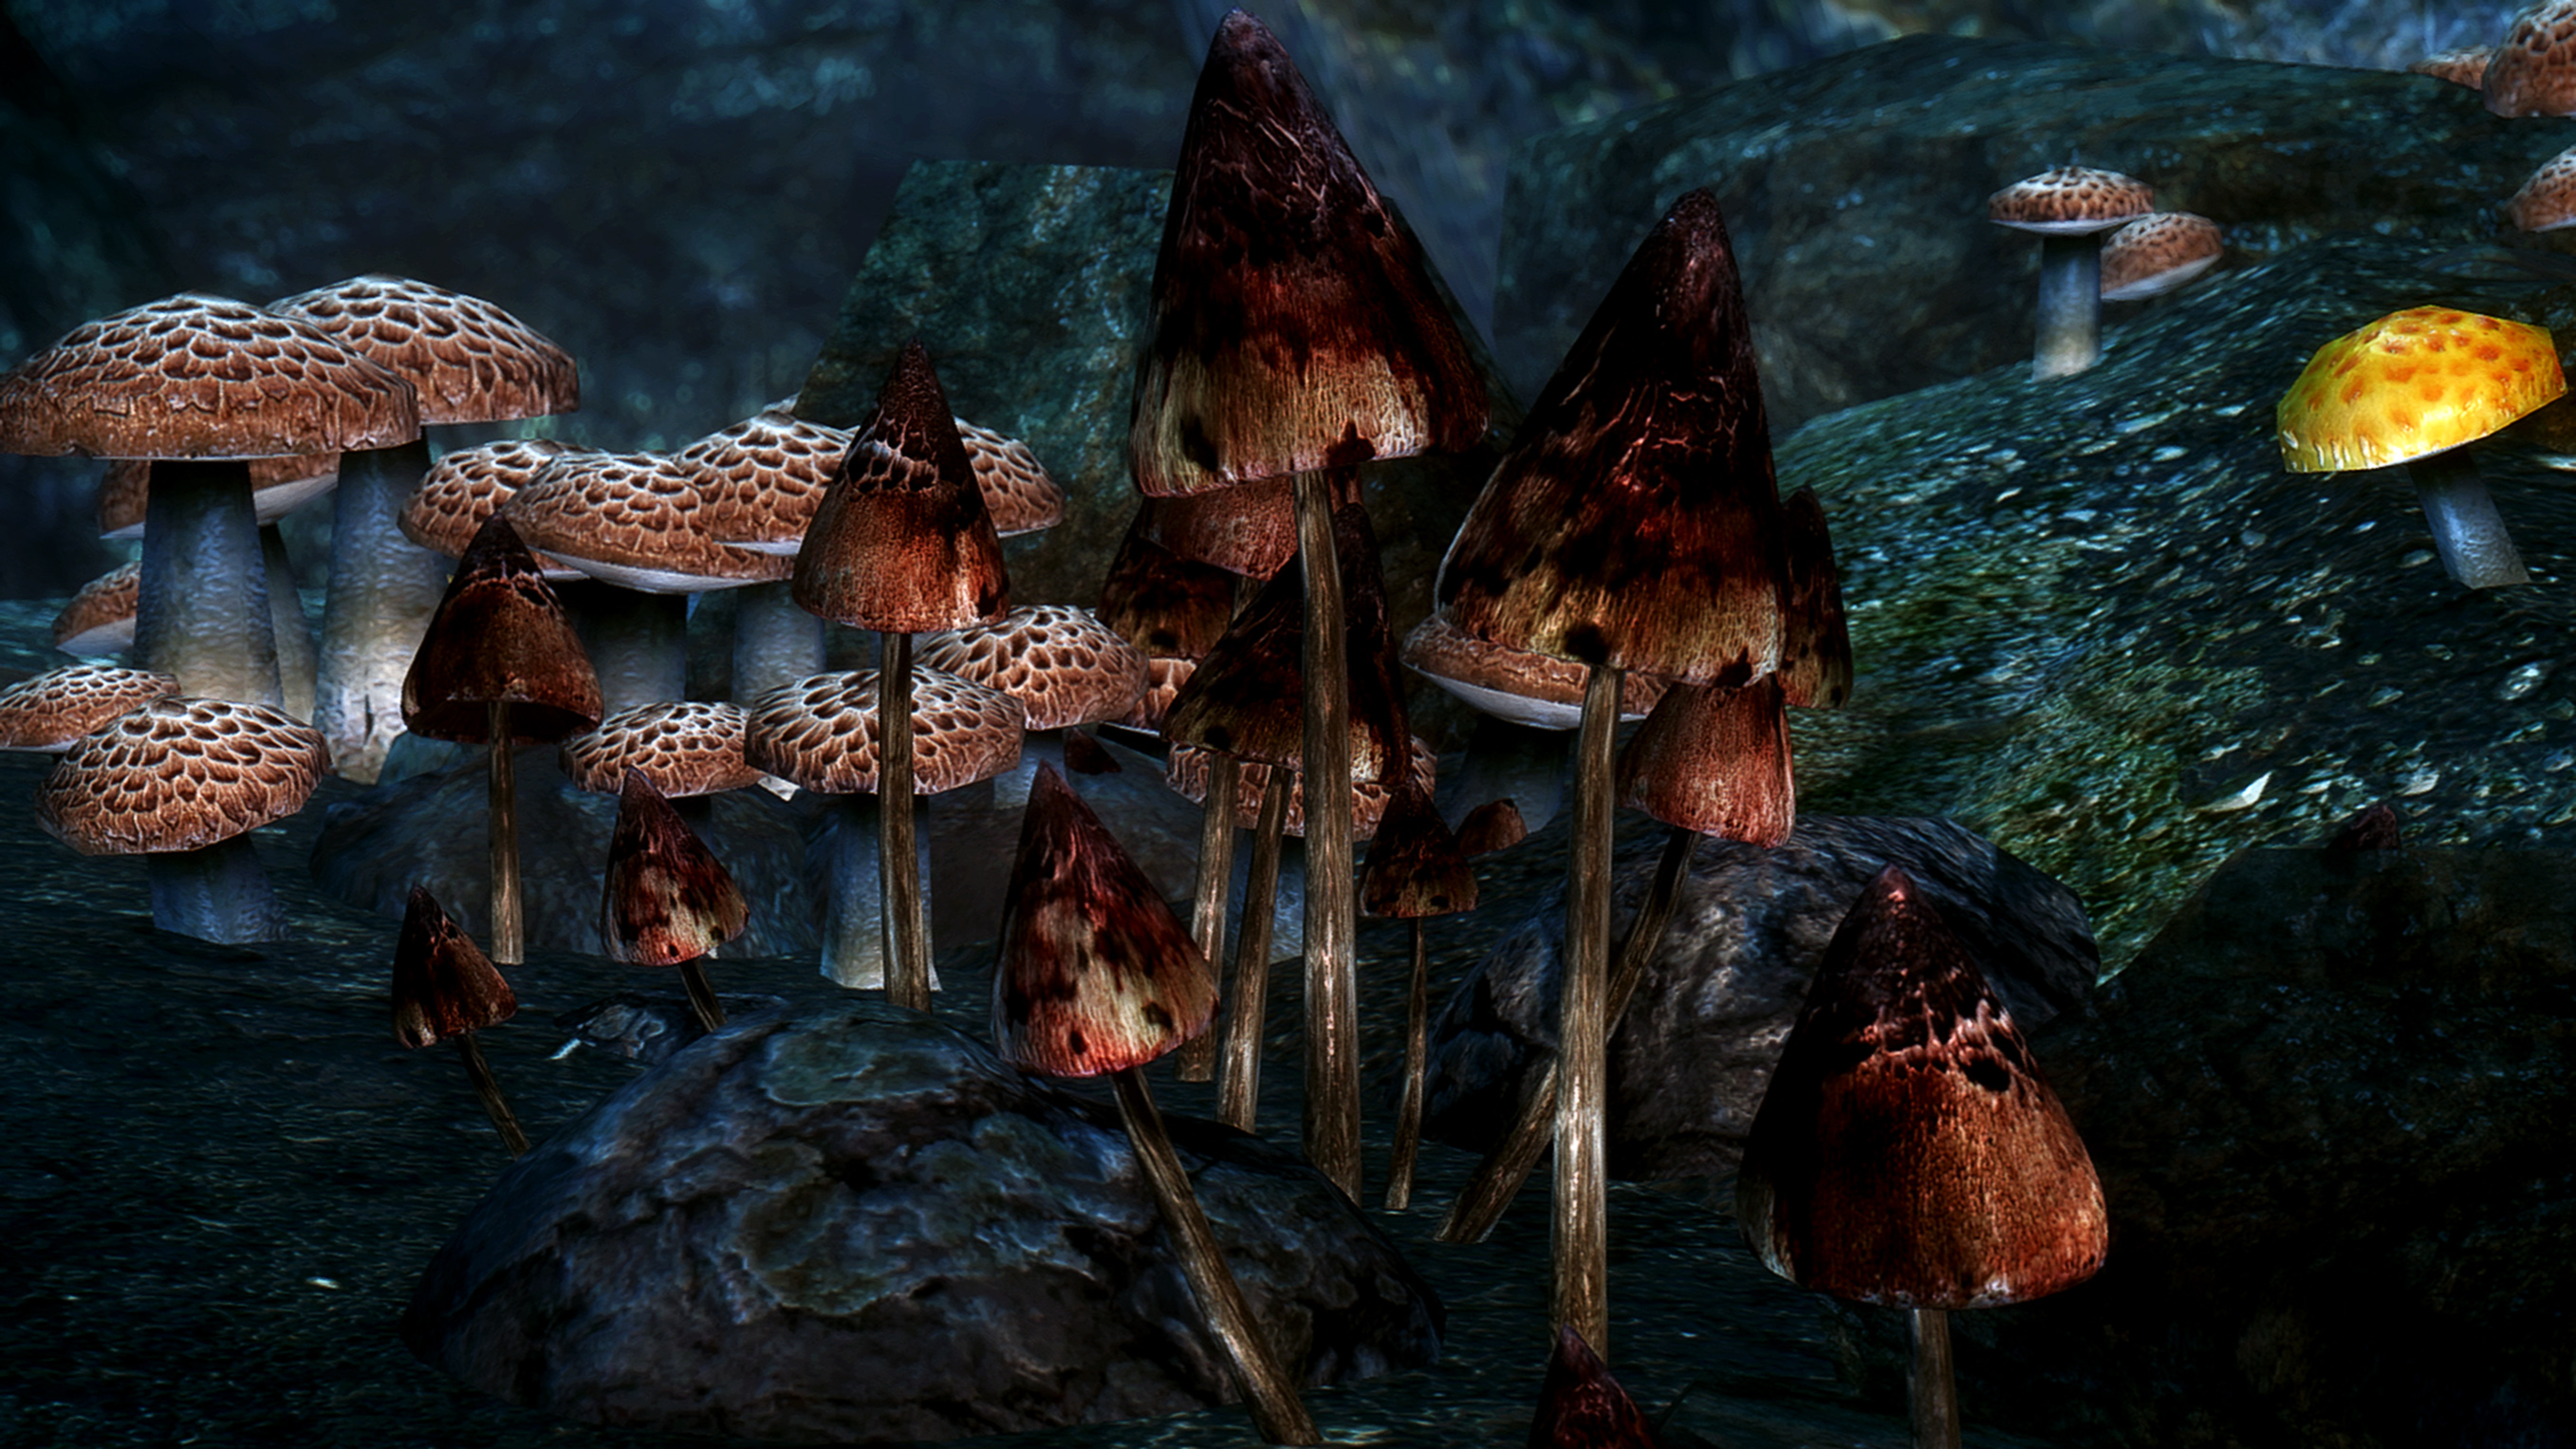 Realistic HD Mushrooms